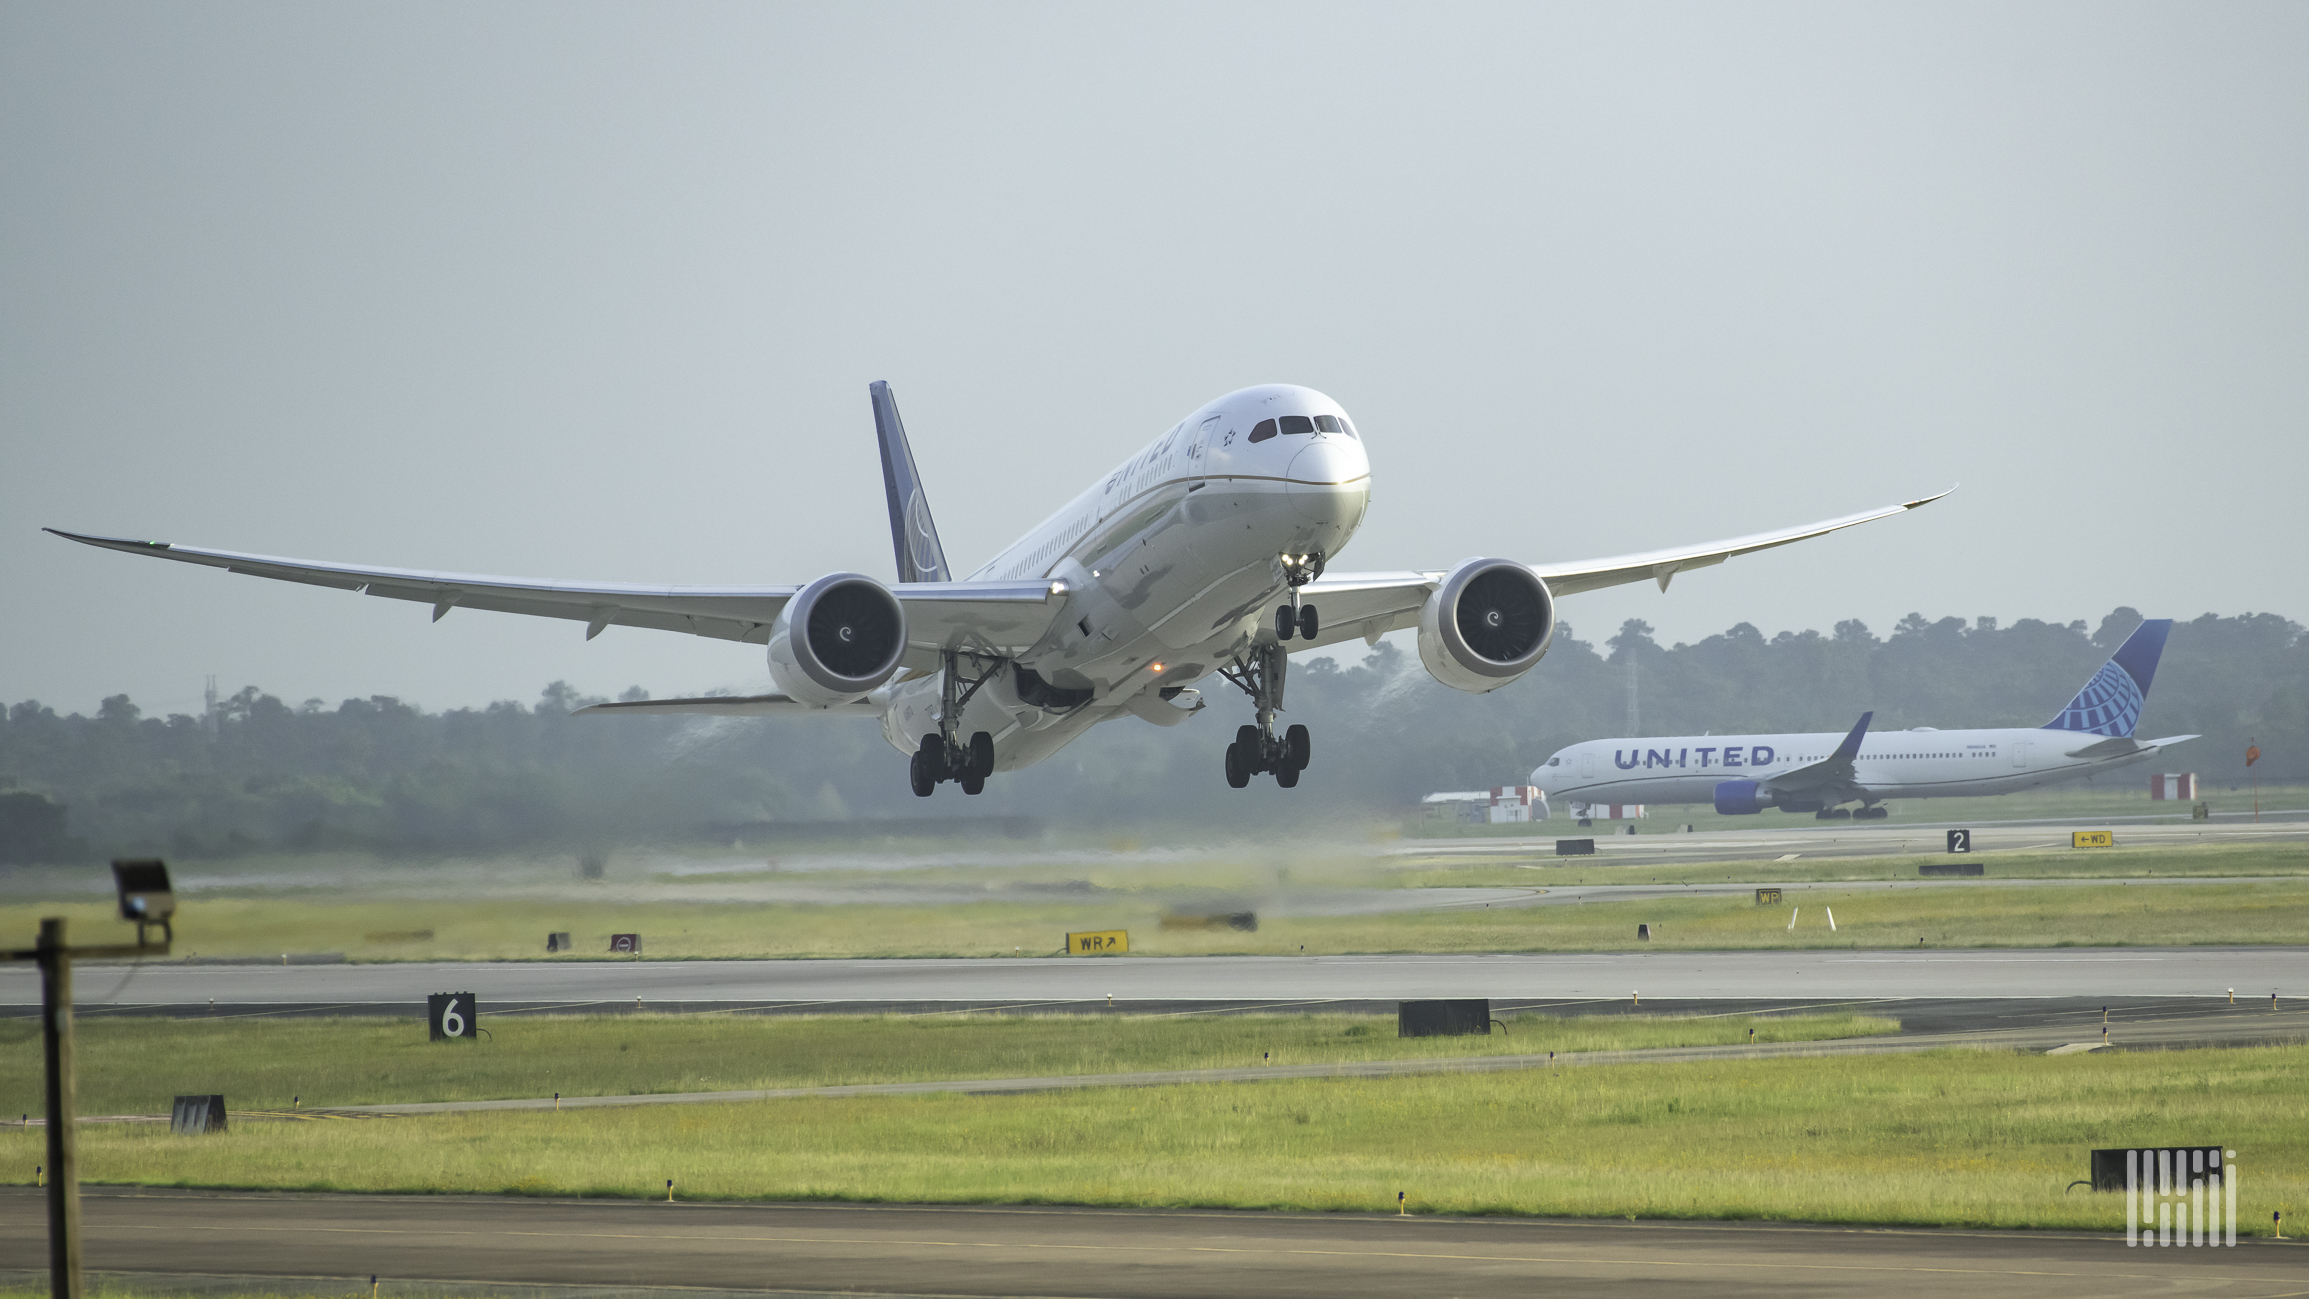 Front view of a plane taking off, with a United Airlines plane in the background.